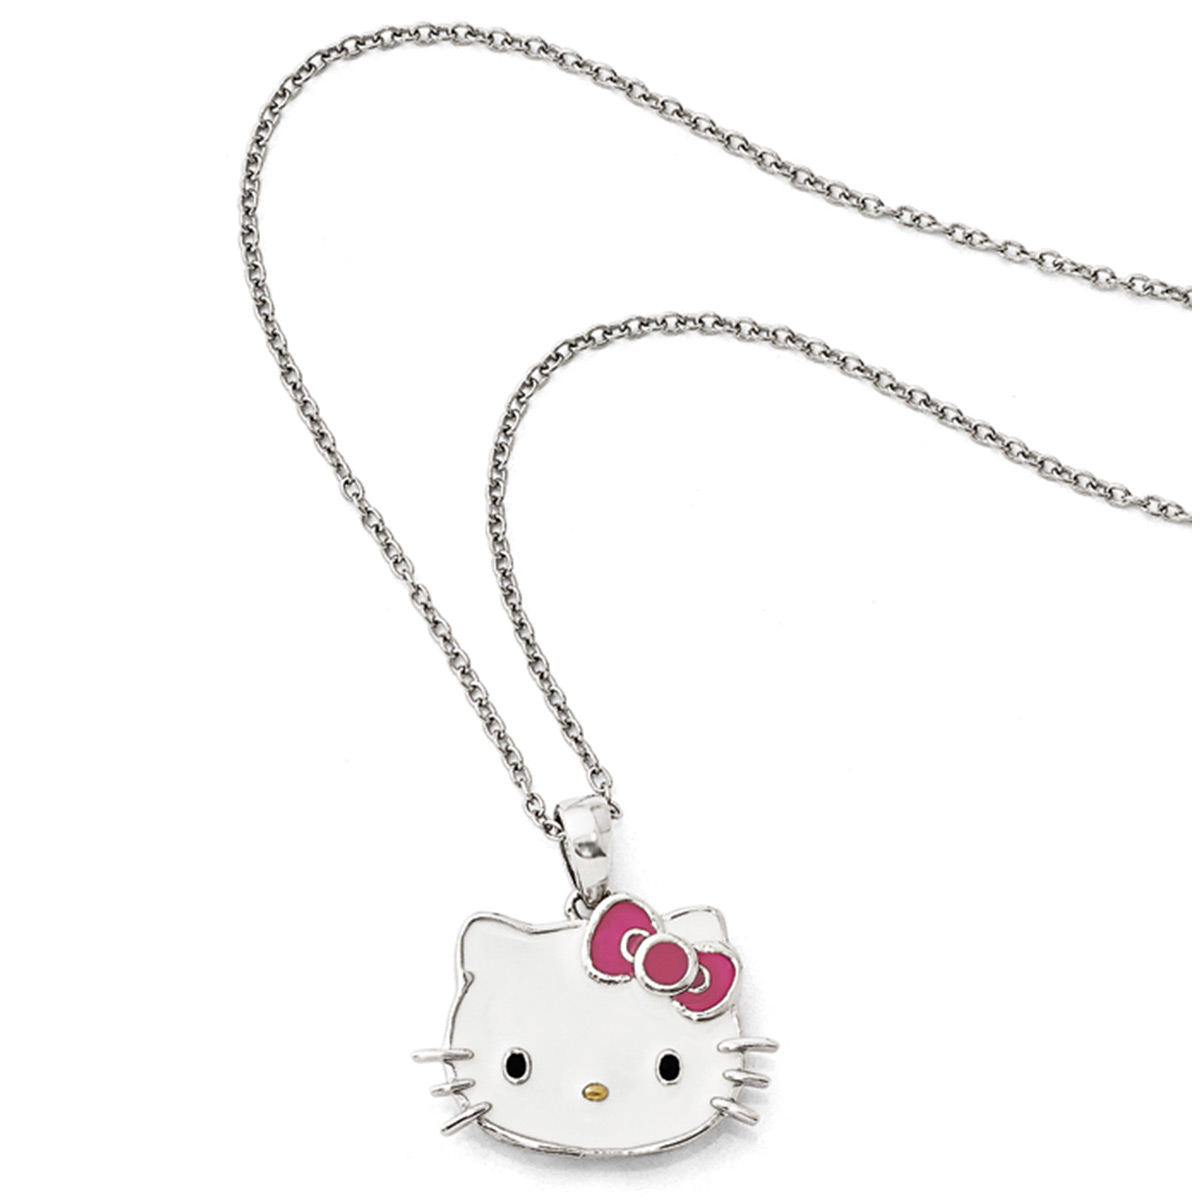 e51fbf63a Necklace, Hello Kitty®, enamel and sterling silver, multicolored ...